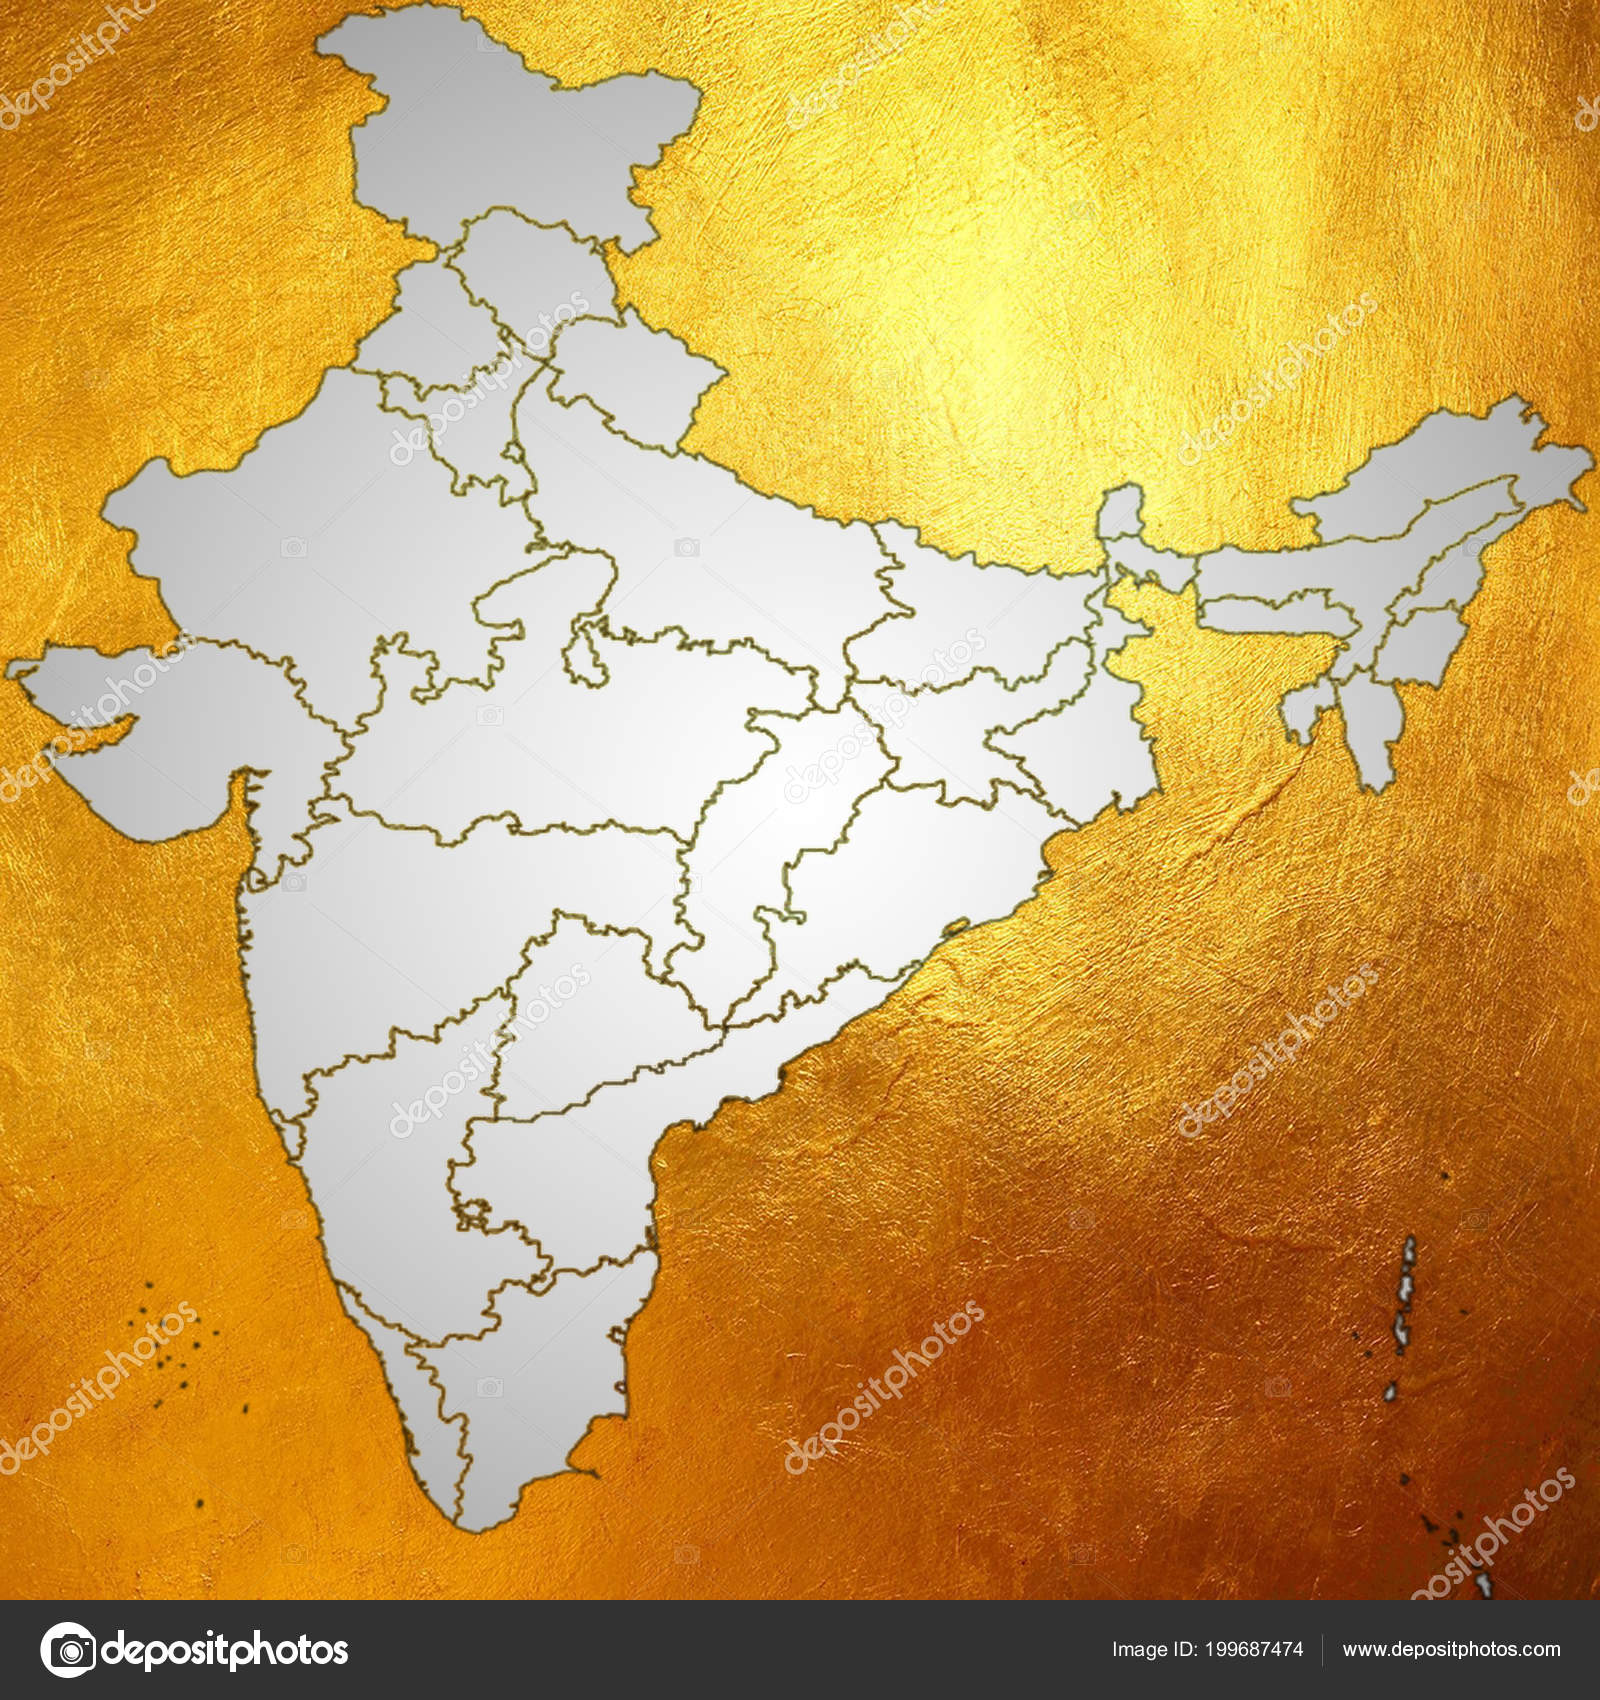 India In Asia Map.Map Of India Asia With All States And Country Boundary In Creative